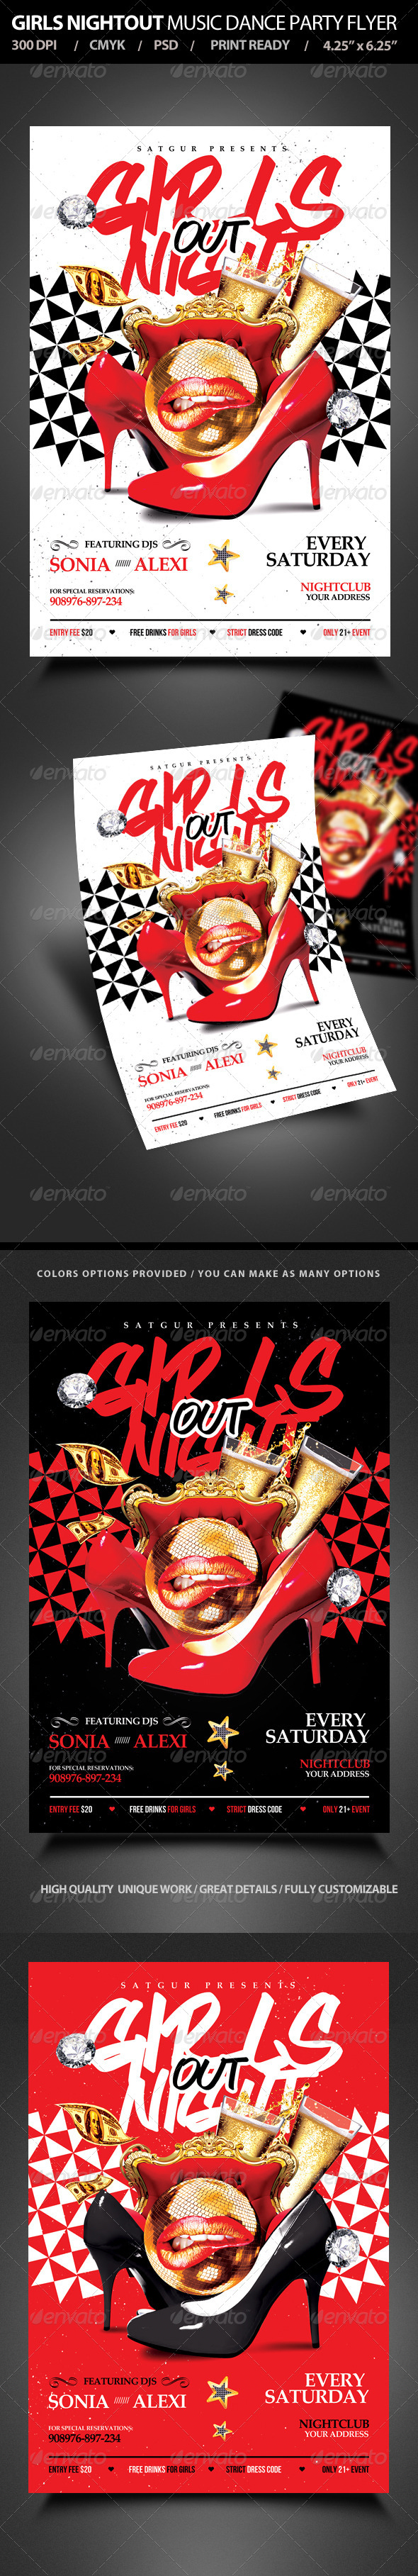 Girls Night Out Music Dance Party Flyer - Clubs & Parties Events